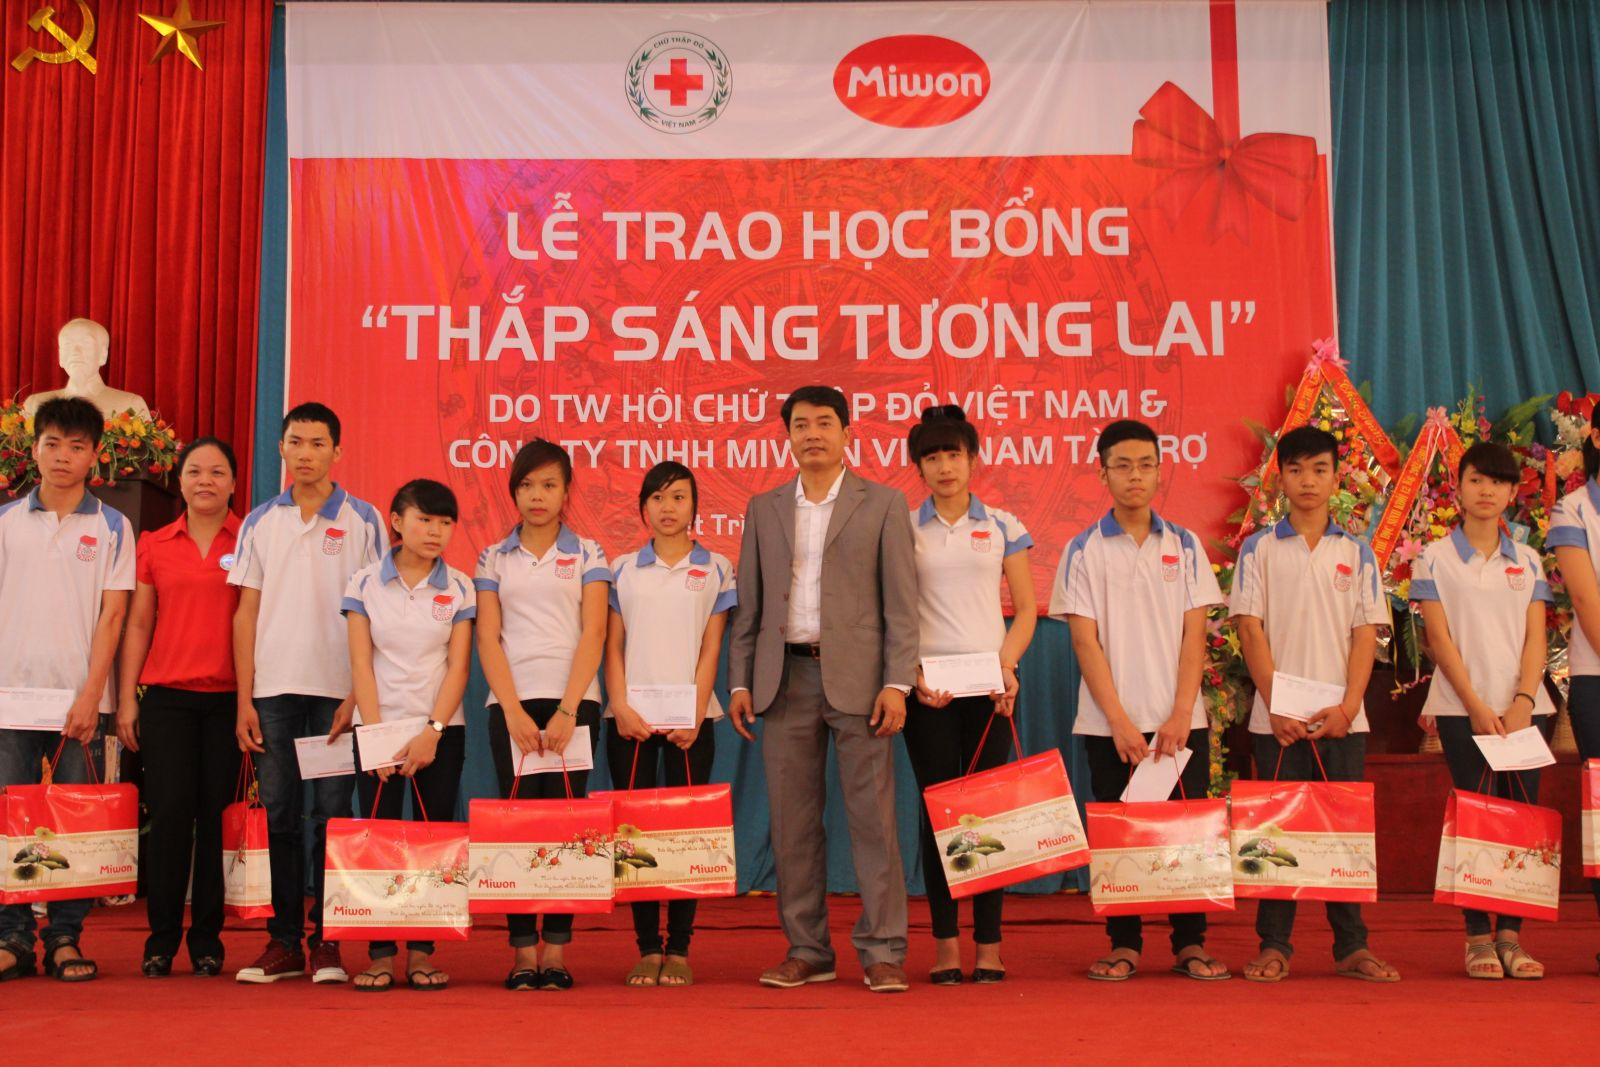 Scholarships granted to poor students with academic achievements in Phu Tho province